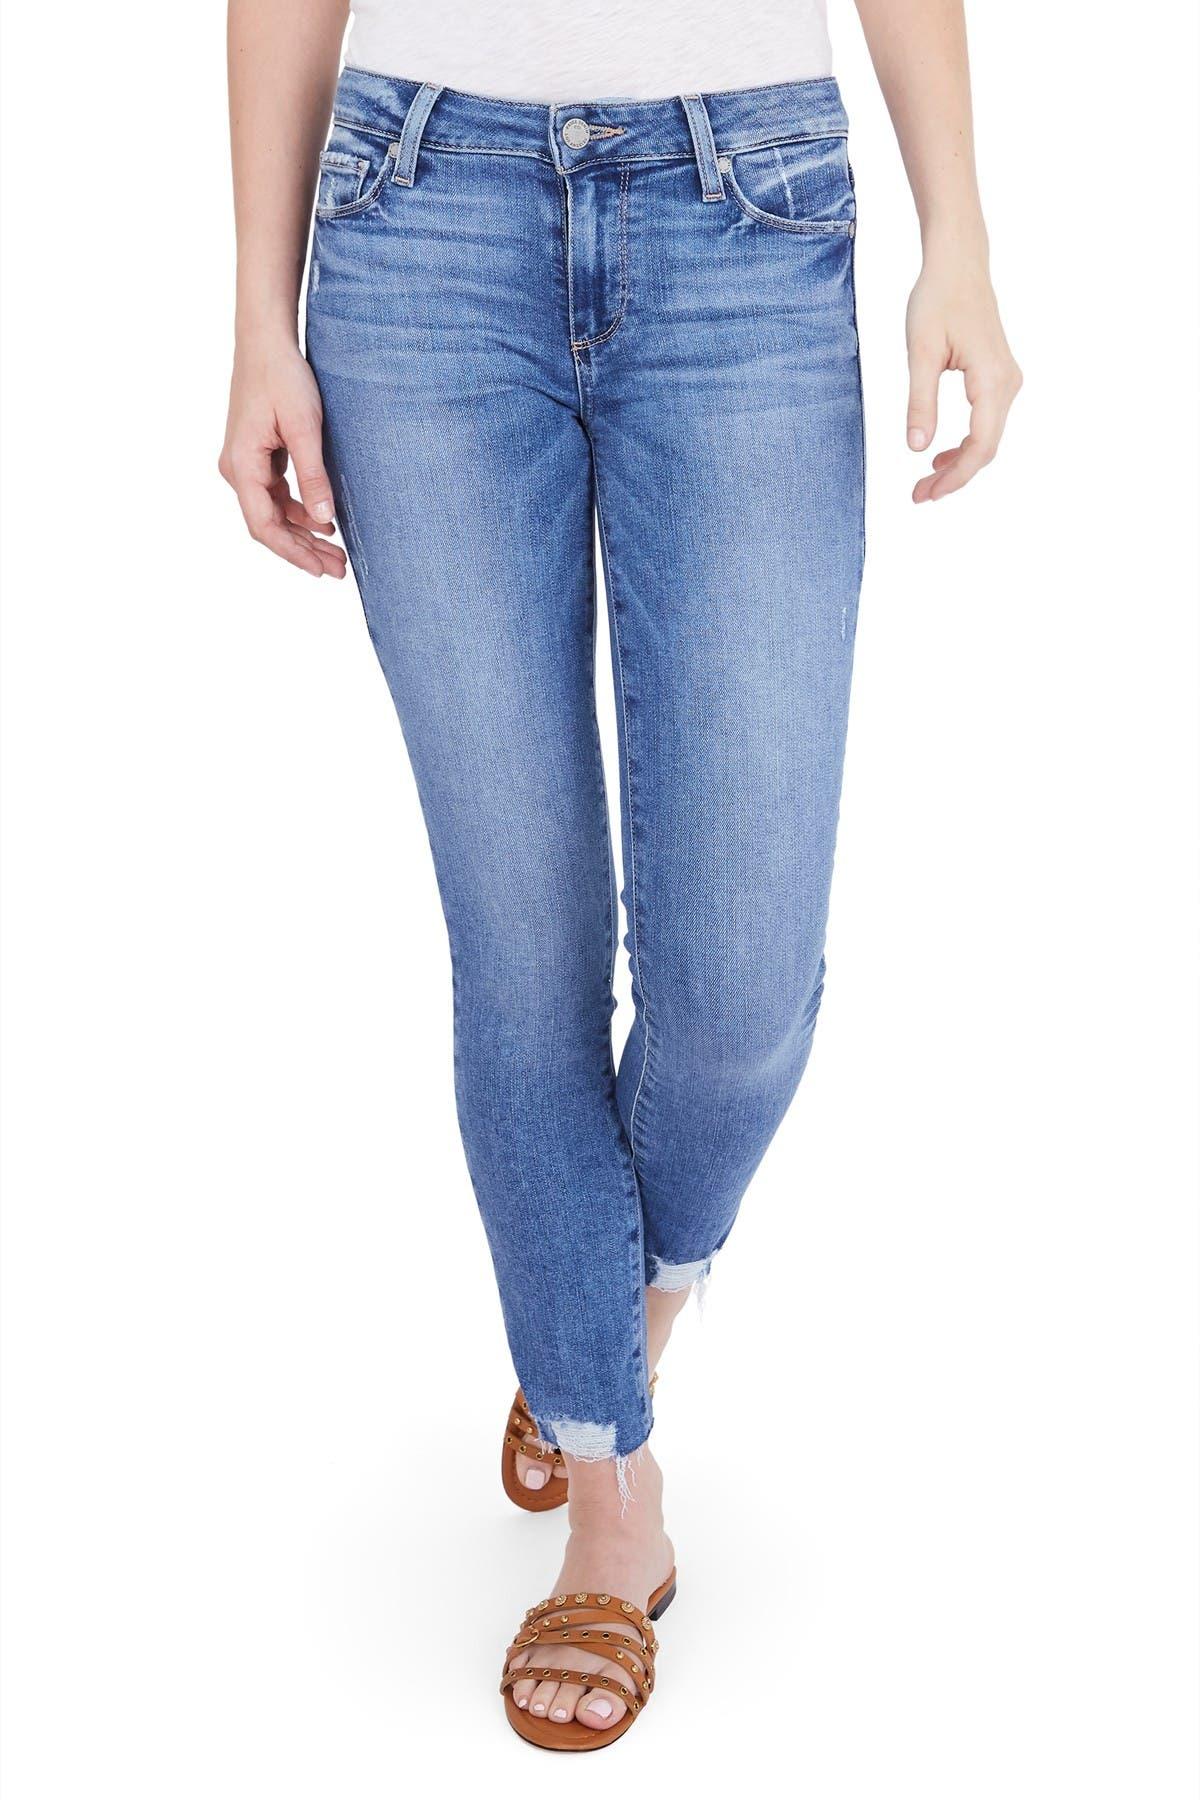 Image of PAIGE Verdugo Distressed Ankle Skinny Jeans